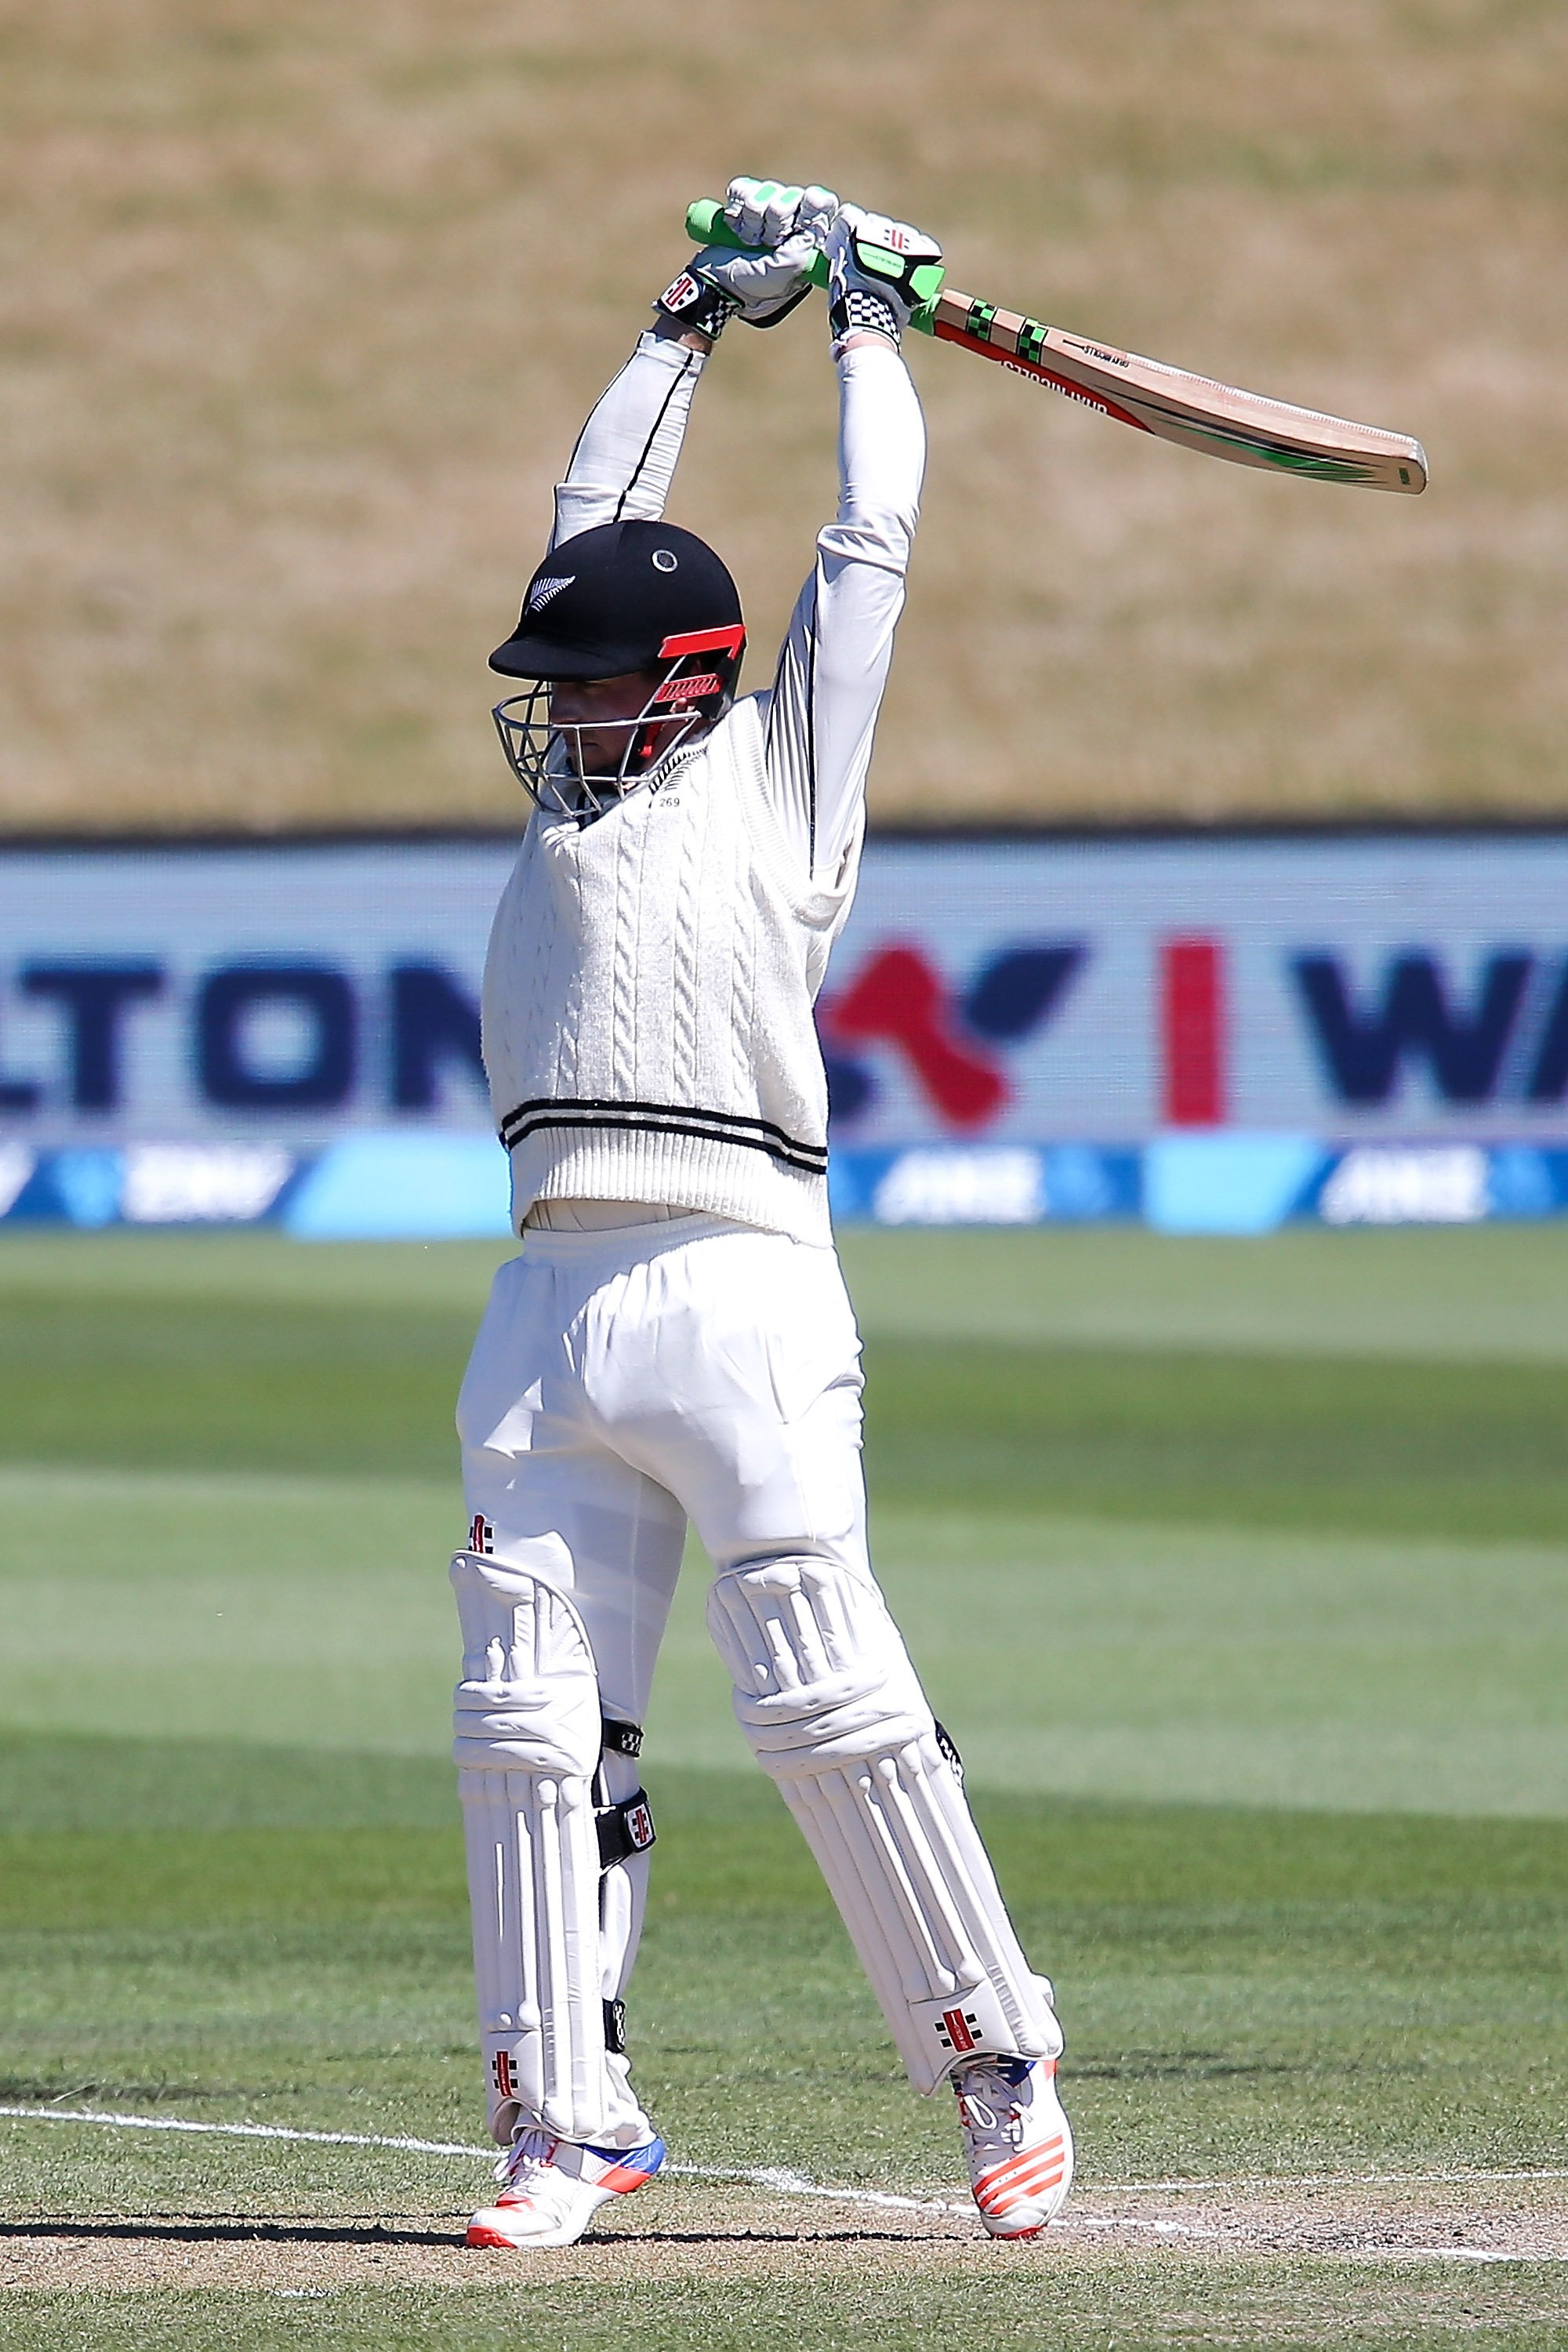 Black Caps take command of second test